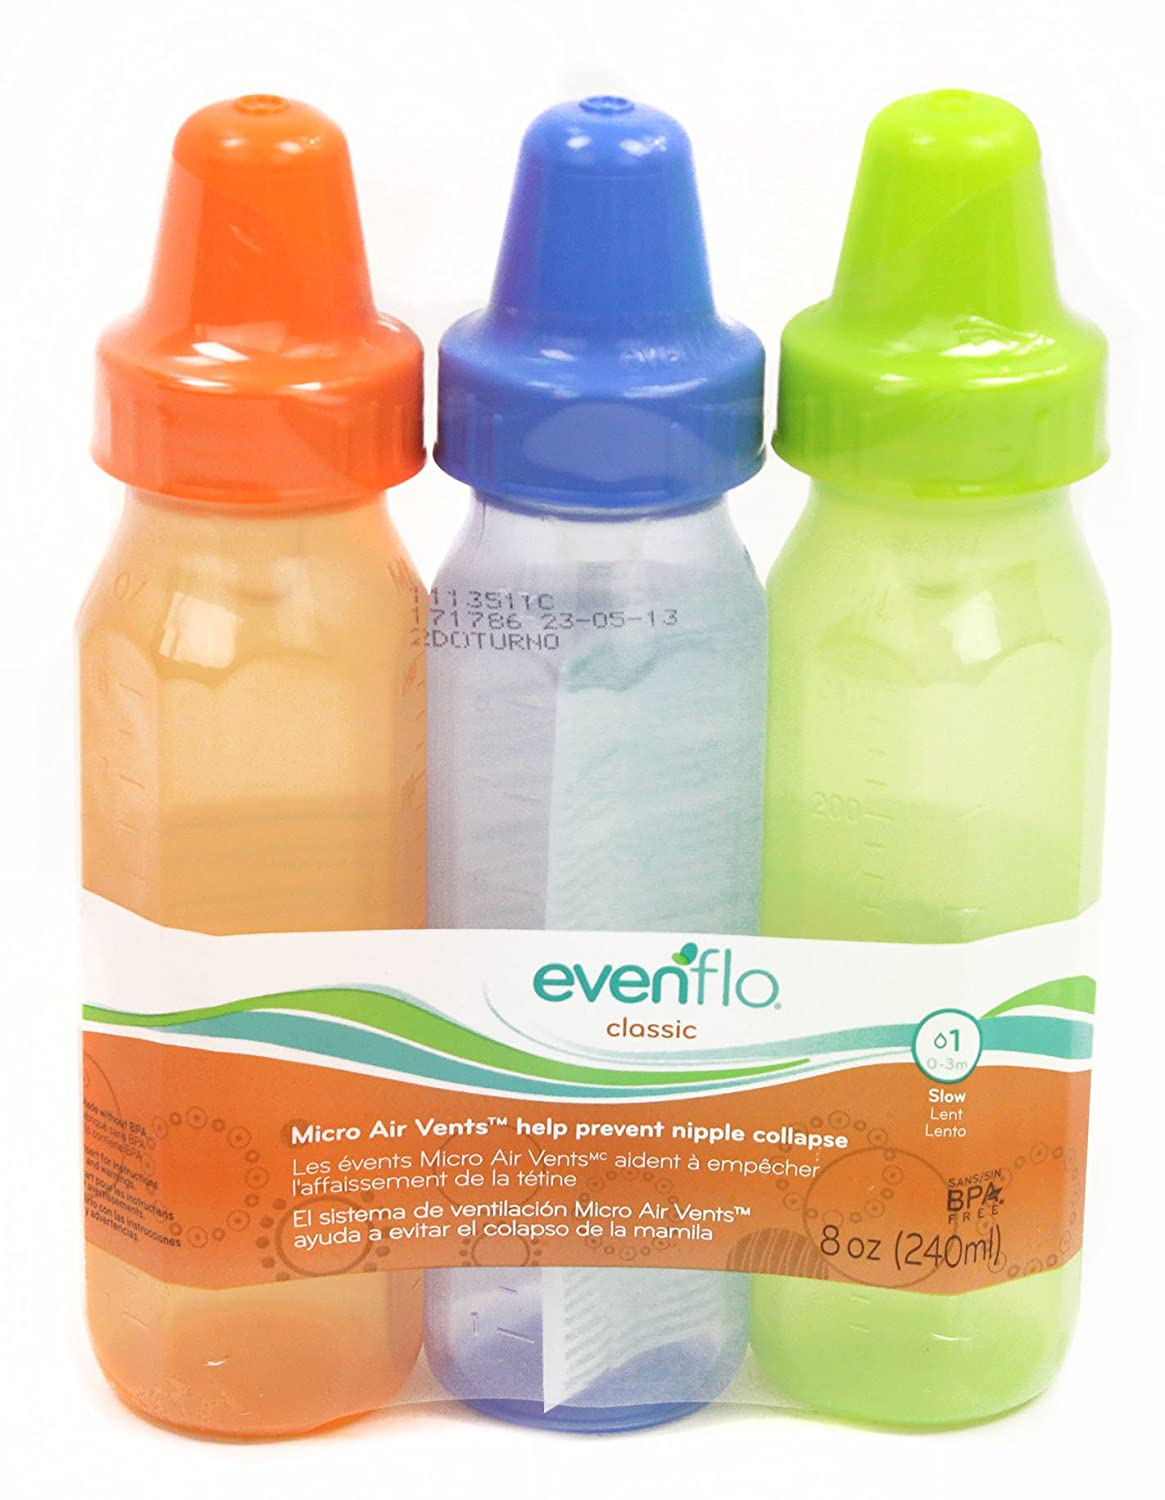 Evenflo 3 Count Classic Light Ounce Nurser Sales Sale Special Price of SALE items from new works Tint 8